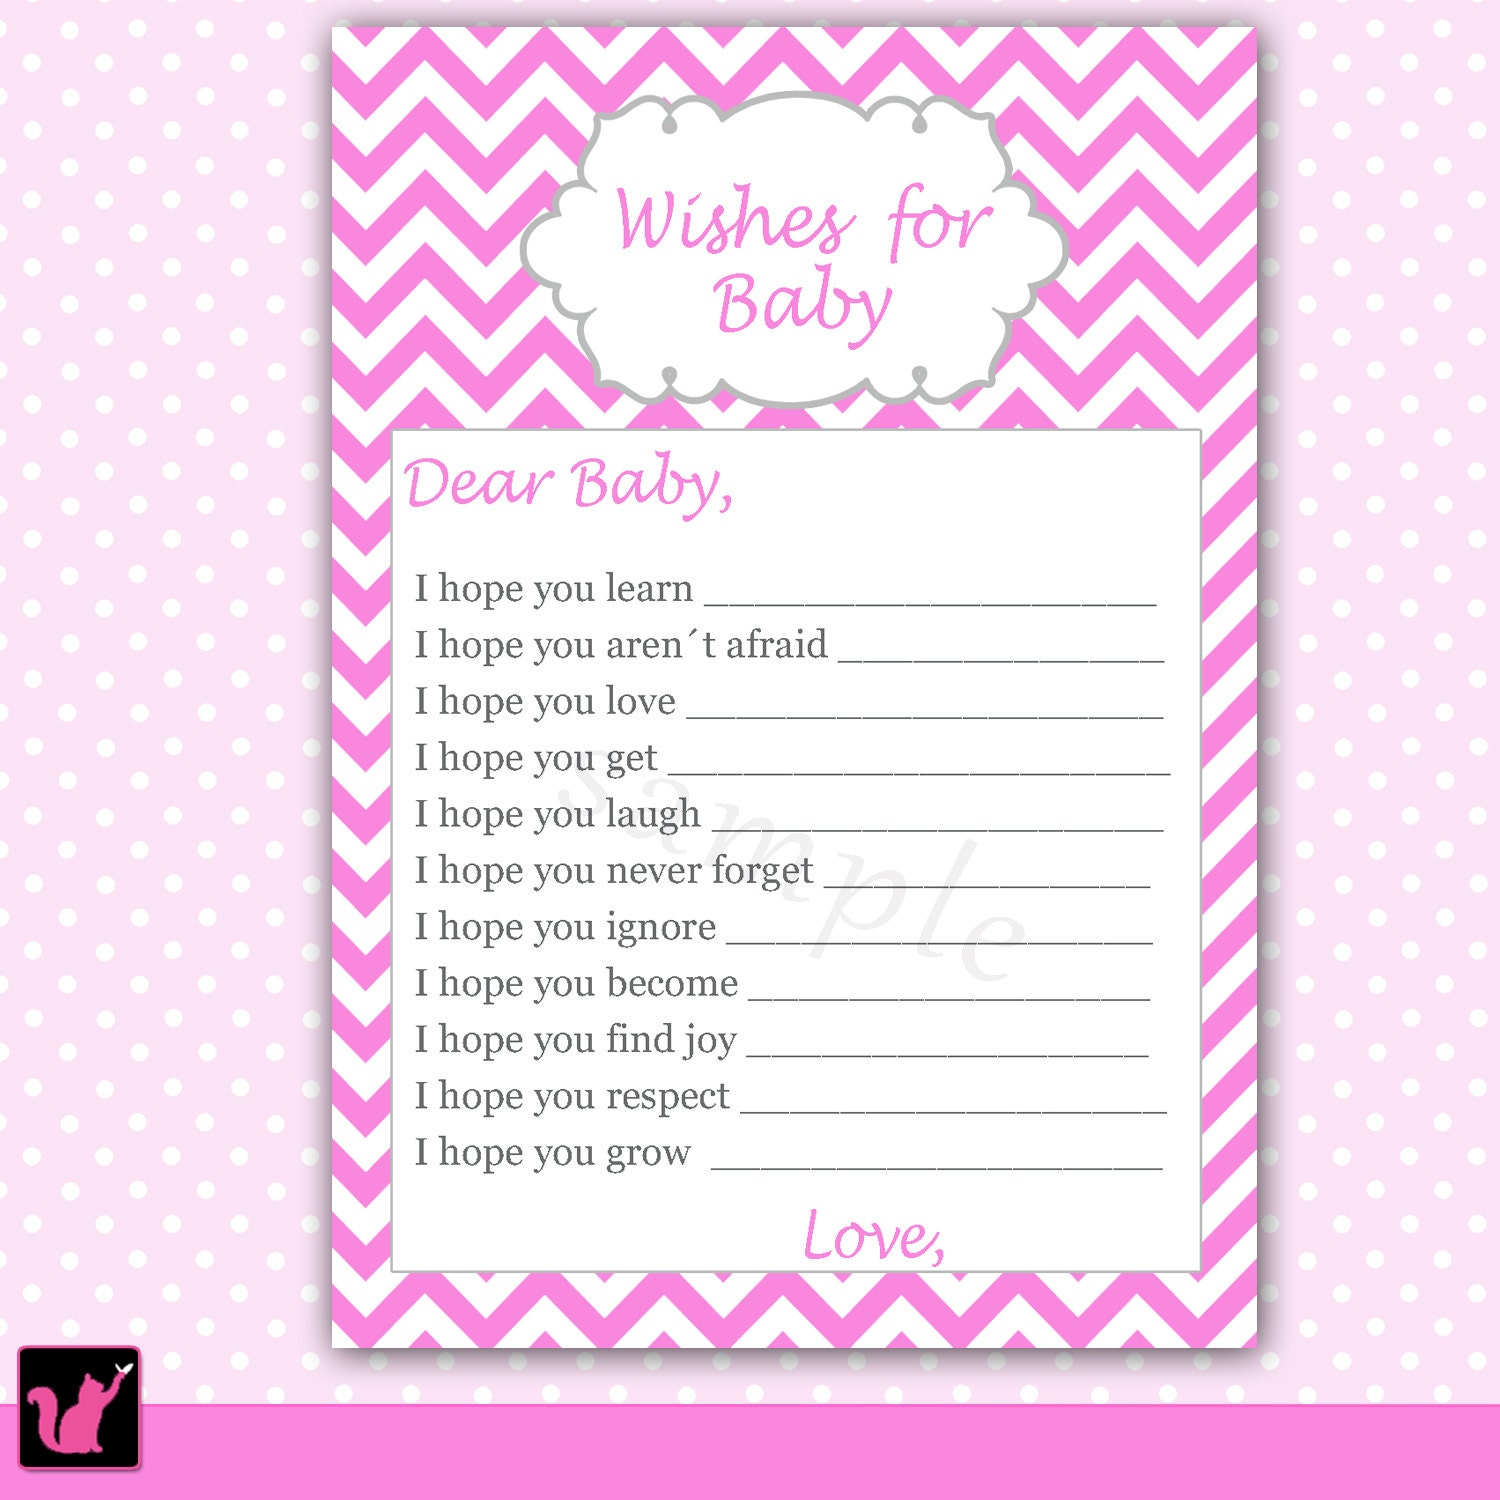 Baby Shower Cards Messages: Wishes For Baby Card Pink Zigzag Chevron Baby By Pinkthecat